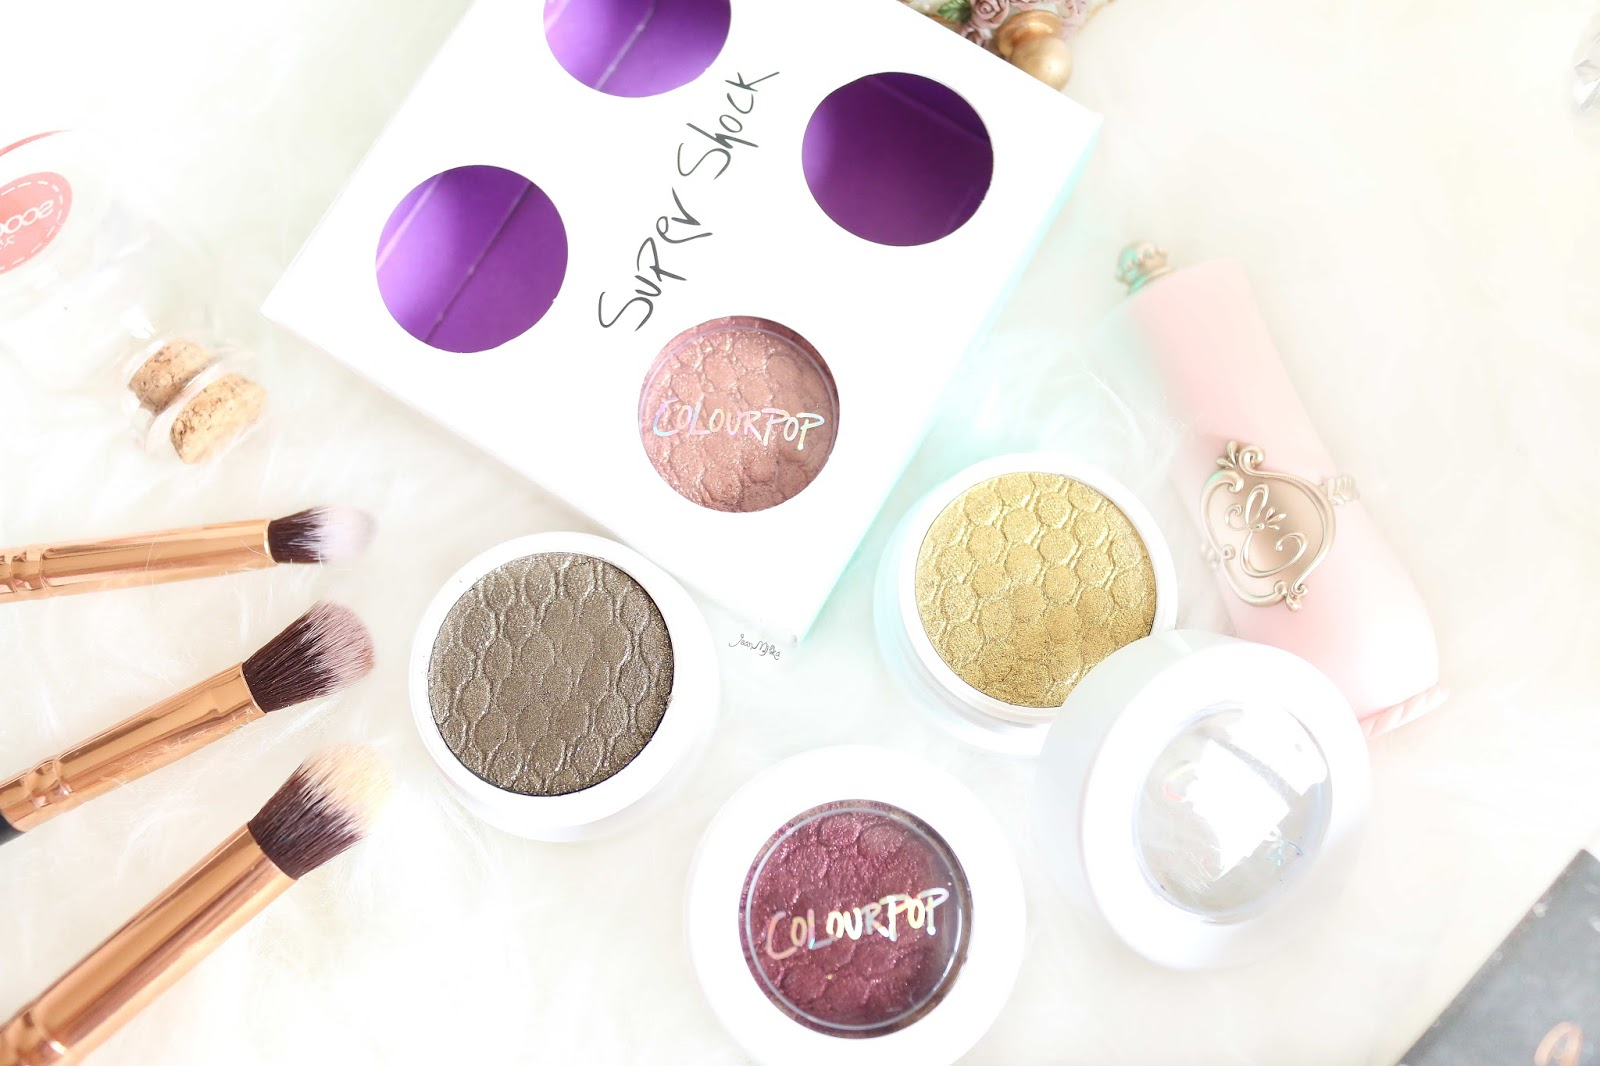 colourpop kathleen lights, colourpop, kathleen lights, where the night is, colourpop where the night is, review, swatch, eyeshadow, makeup murah, makeup untuk pemula, drugstore makeup, colourpop eyeshadow